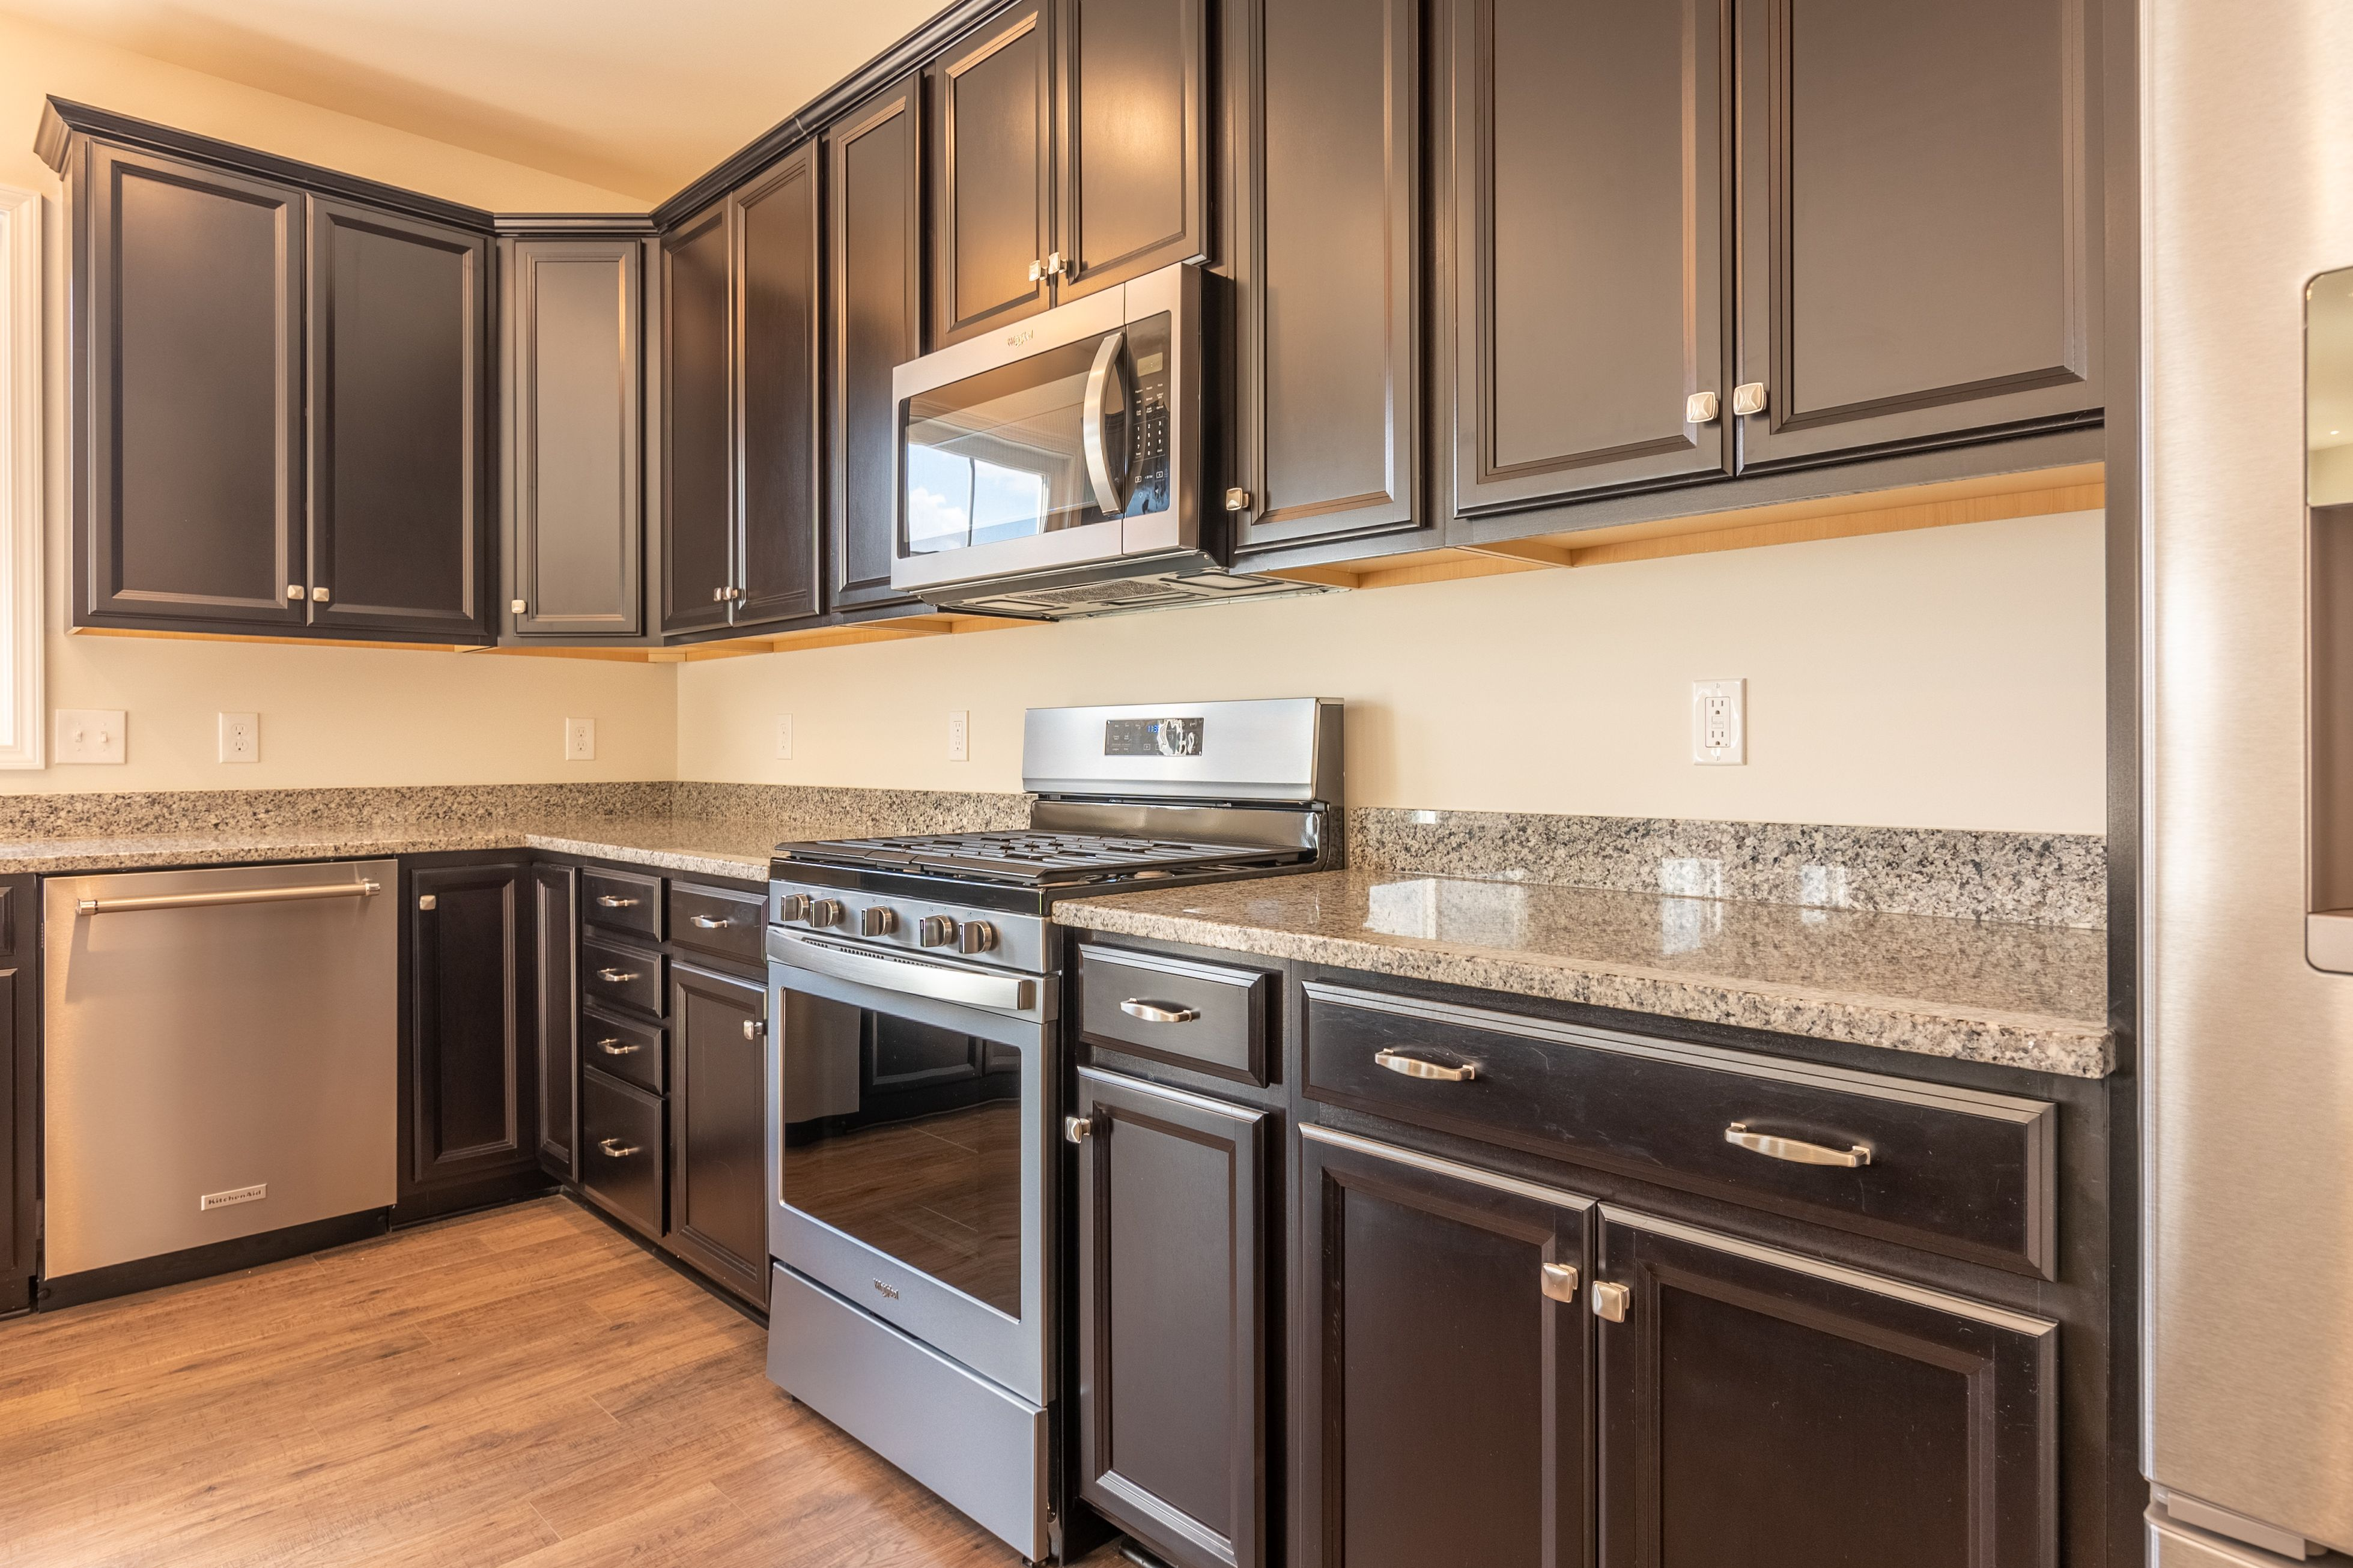 Kitchen featured in The Lexington By Stateson Homes in Blacksburg, VA